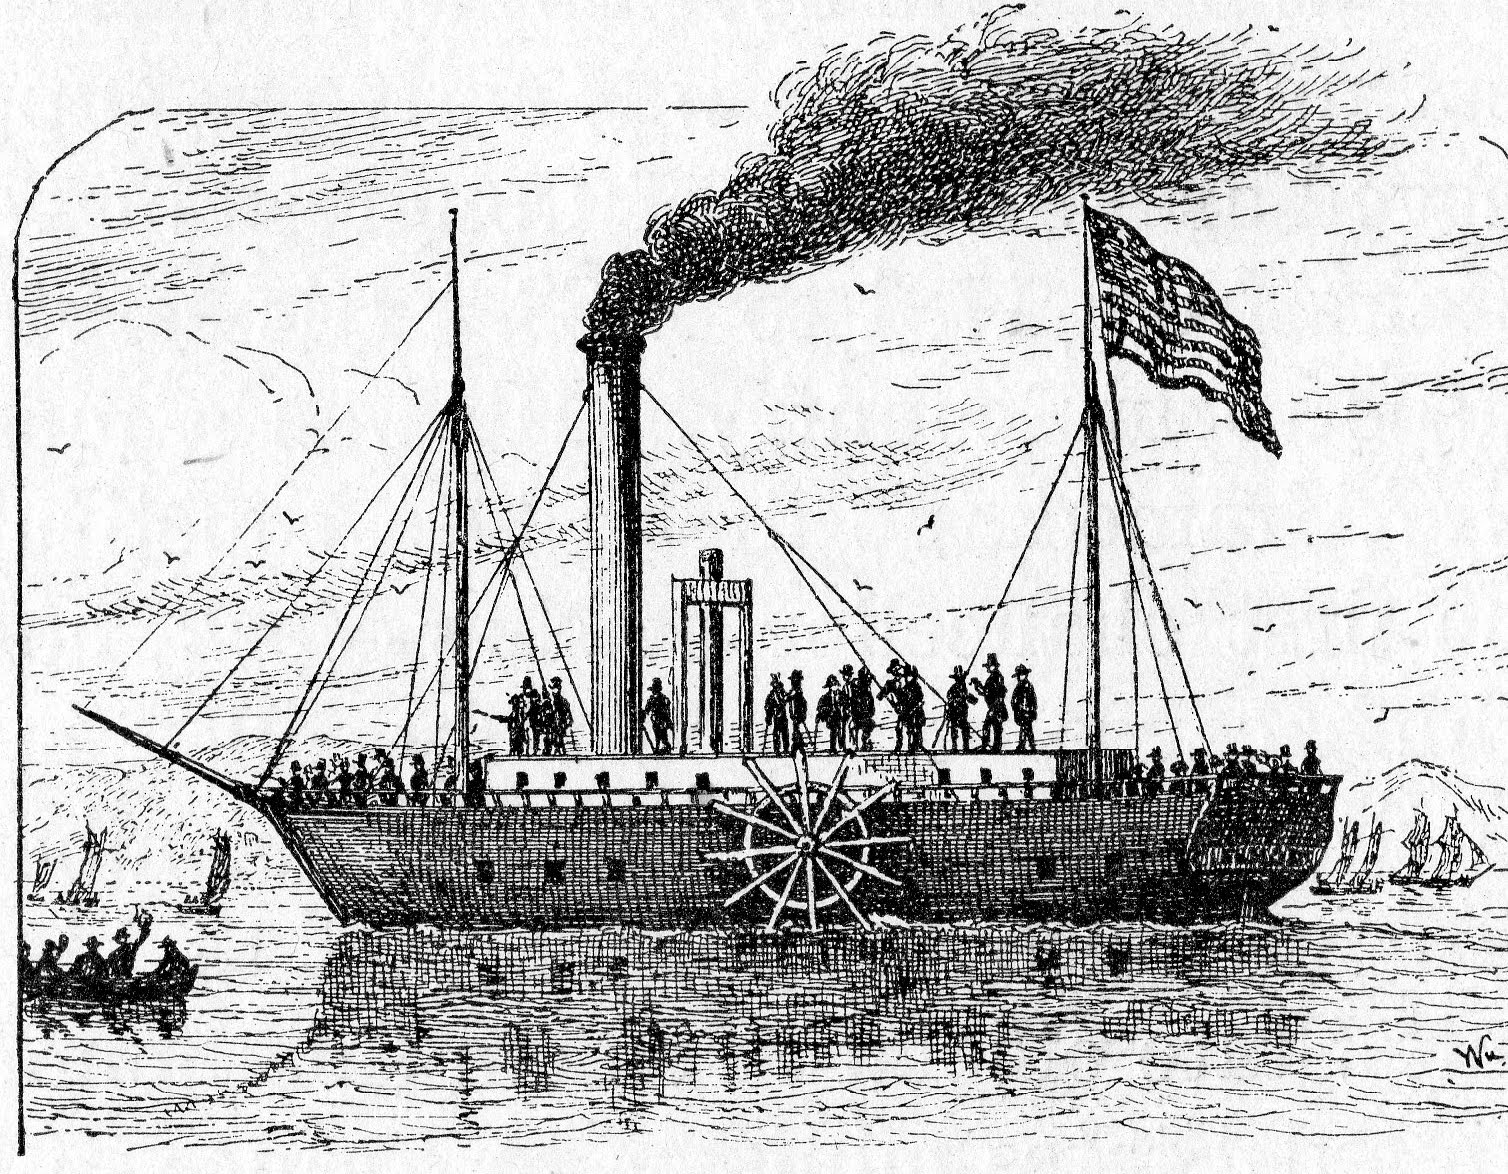 Worksheet Steamboat Inventor Robert Fulton heretic rebel a thing to flout fultons folly chugs up river robert north steamer later known as the clairmont